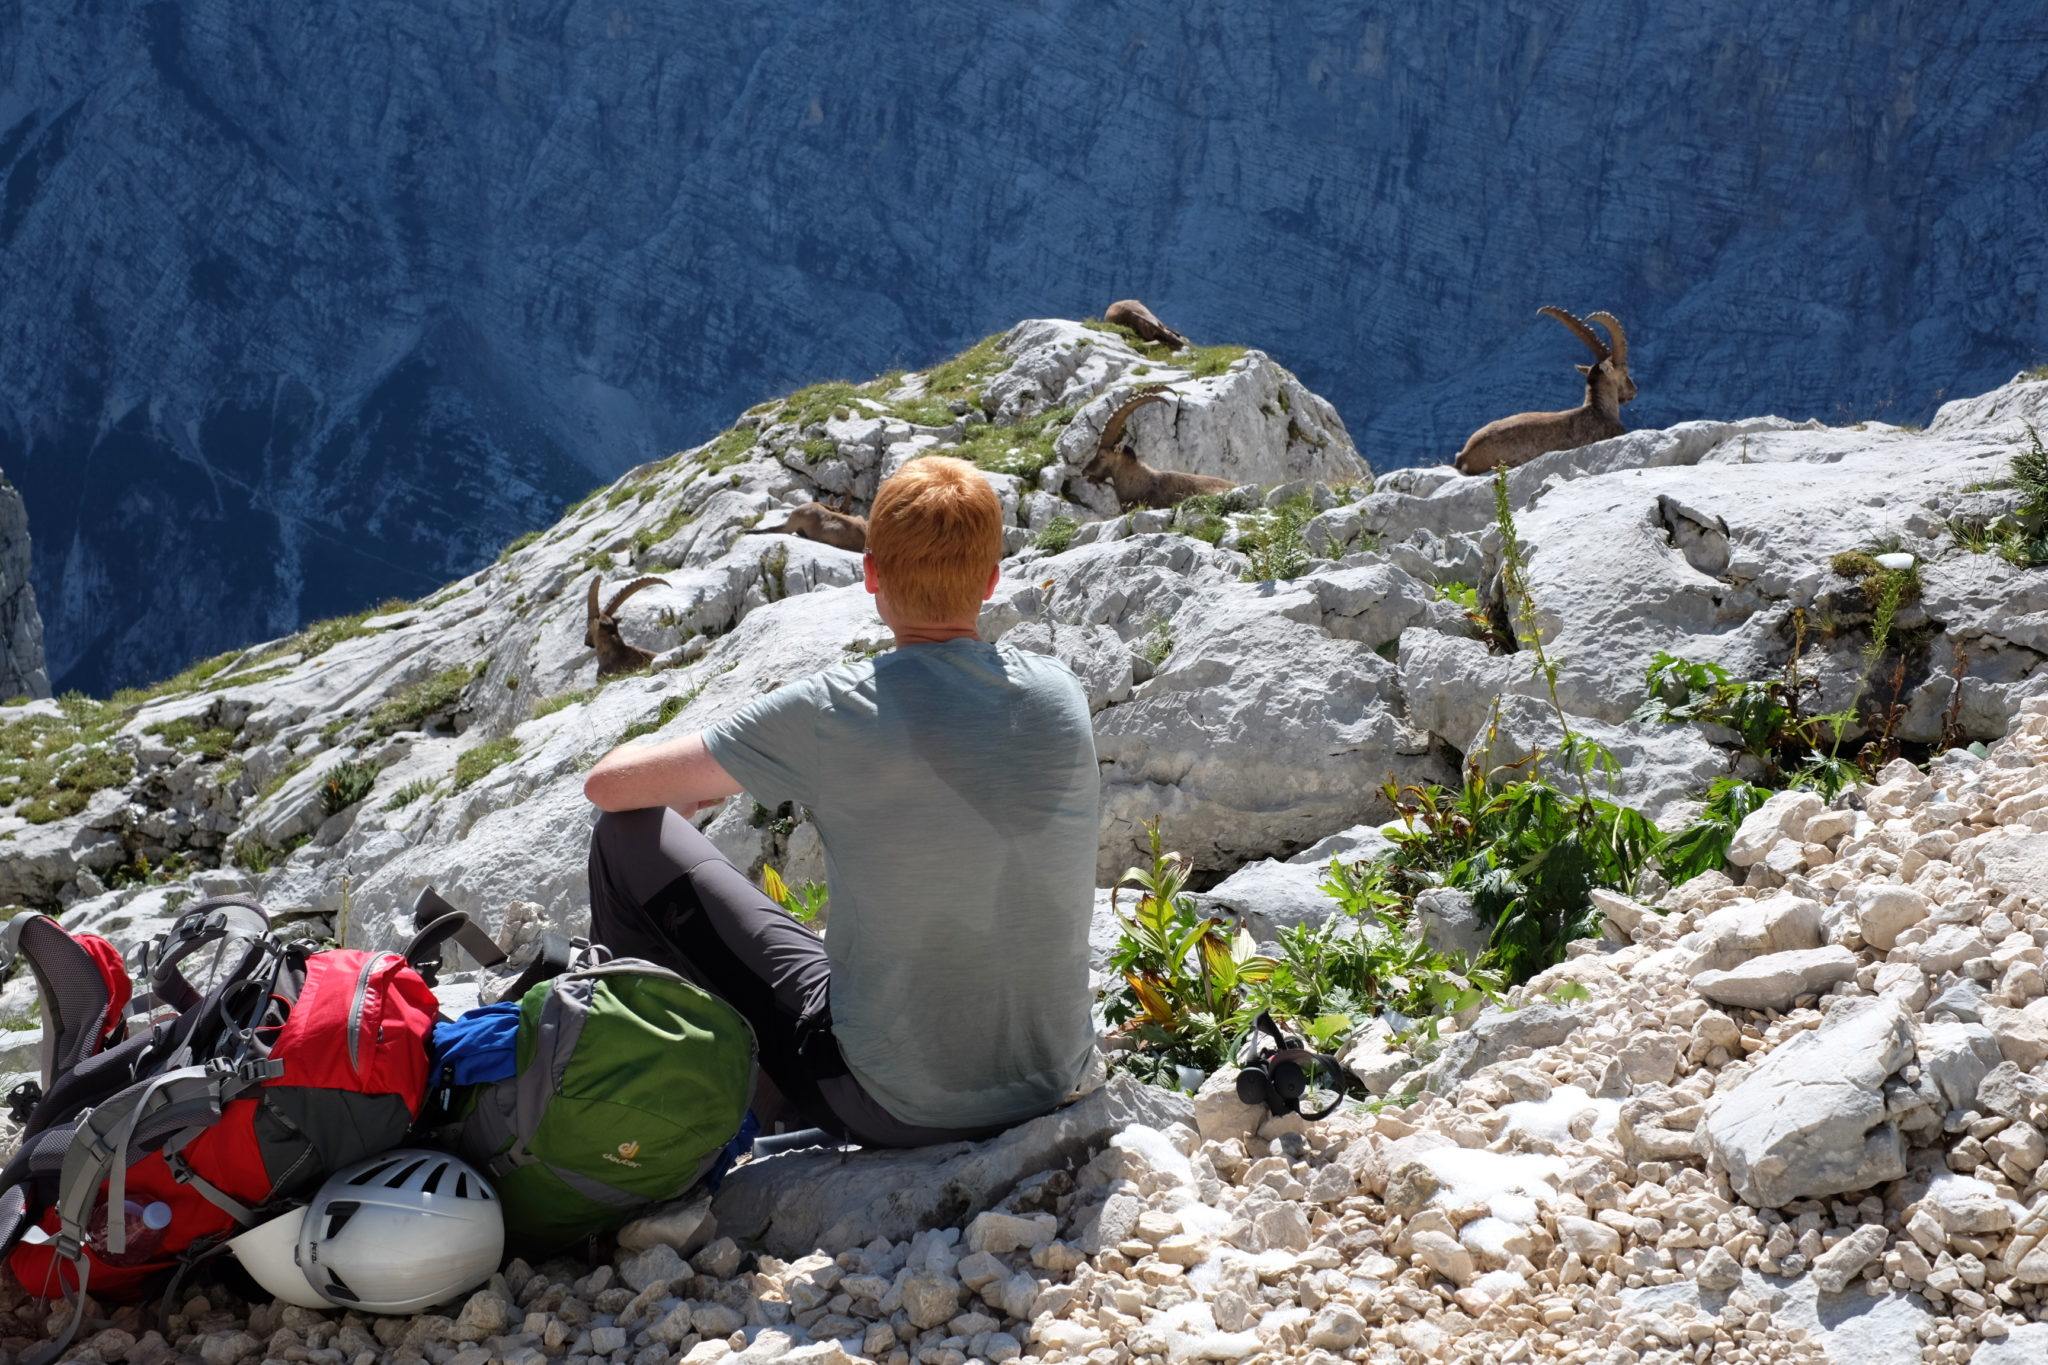 Enjoying a snack in the mountains with Alpine ibexes, Triglav National Park, Slovenia